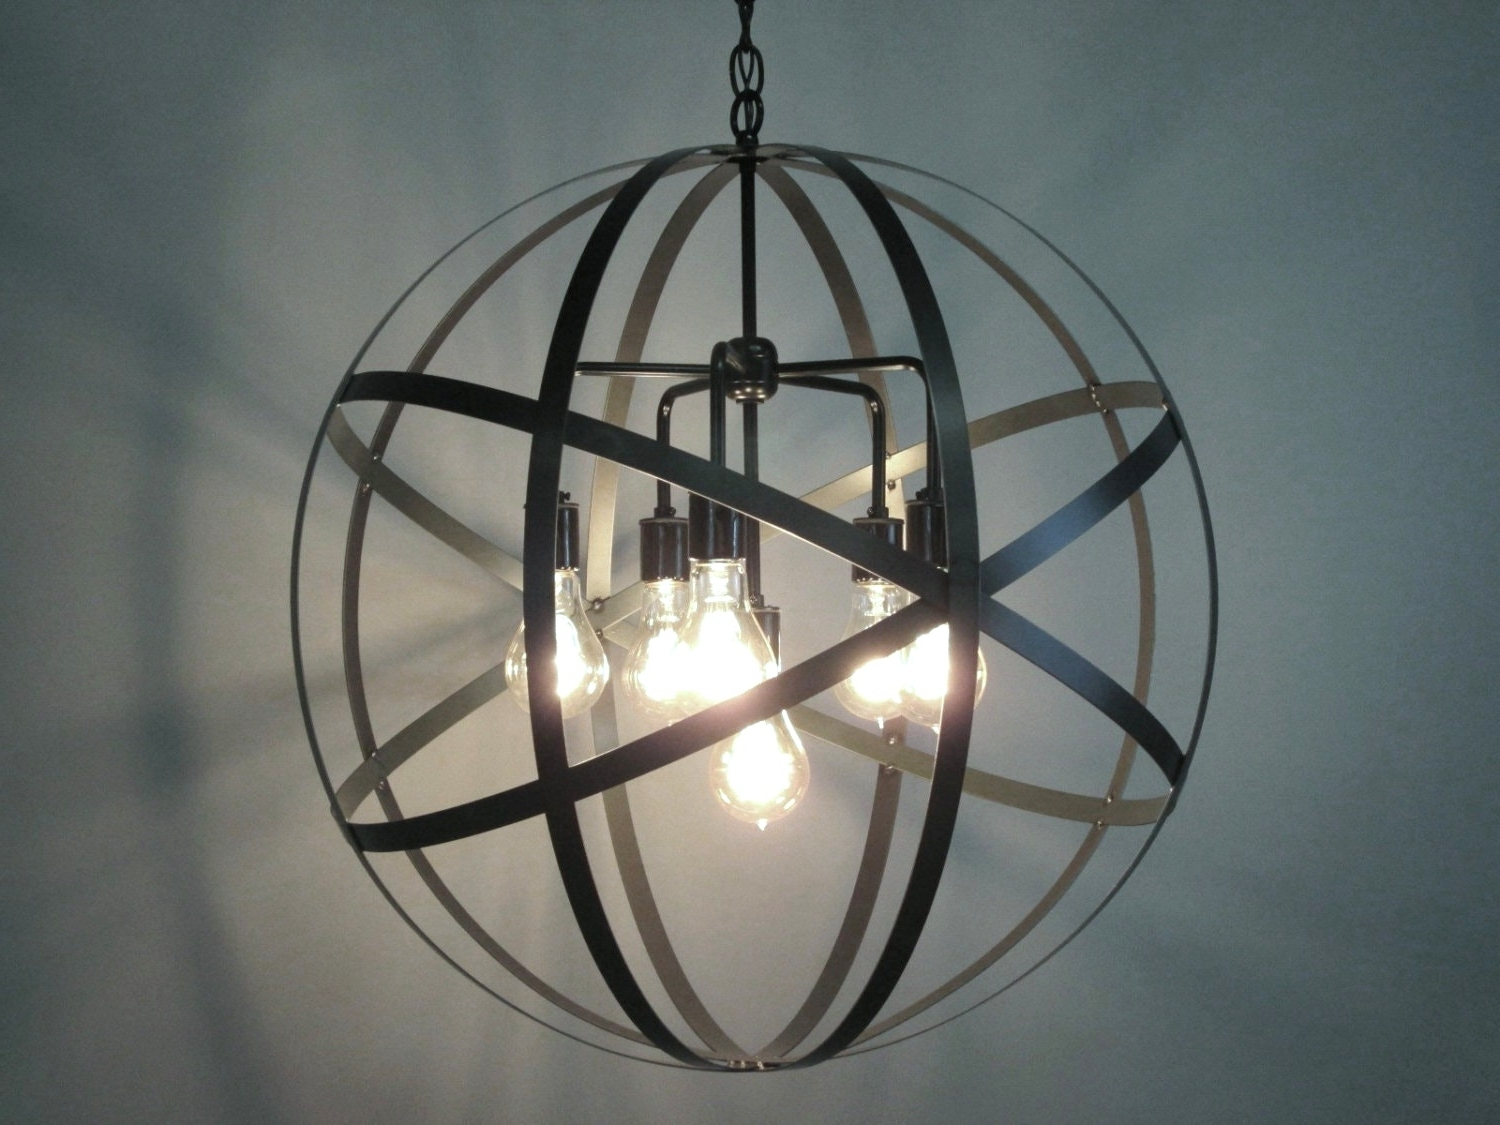 Industrial Orb Chandelier Ceiling Light Sphere 24 With Clear Glass With Latest Orb Chandeliers (View 8 of 15)